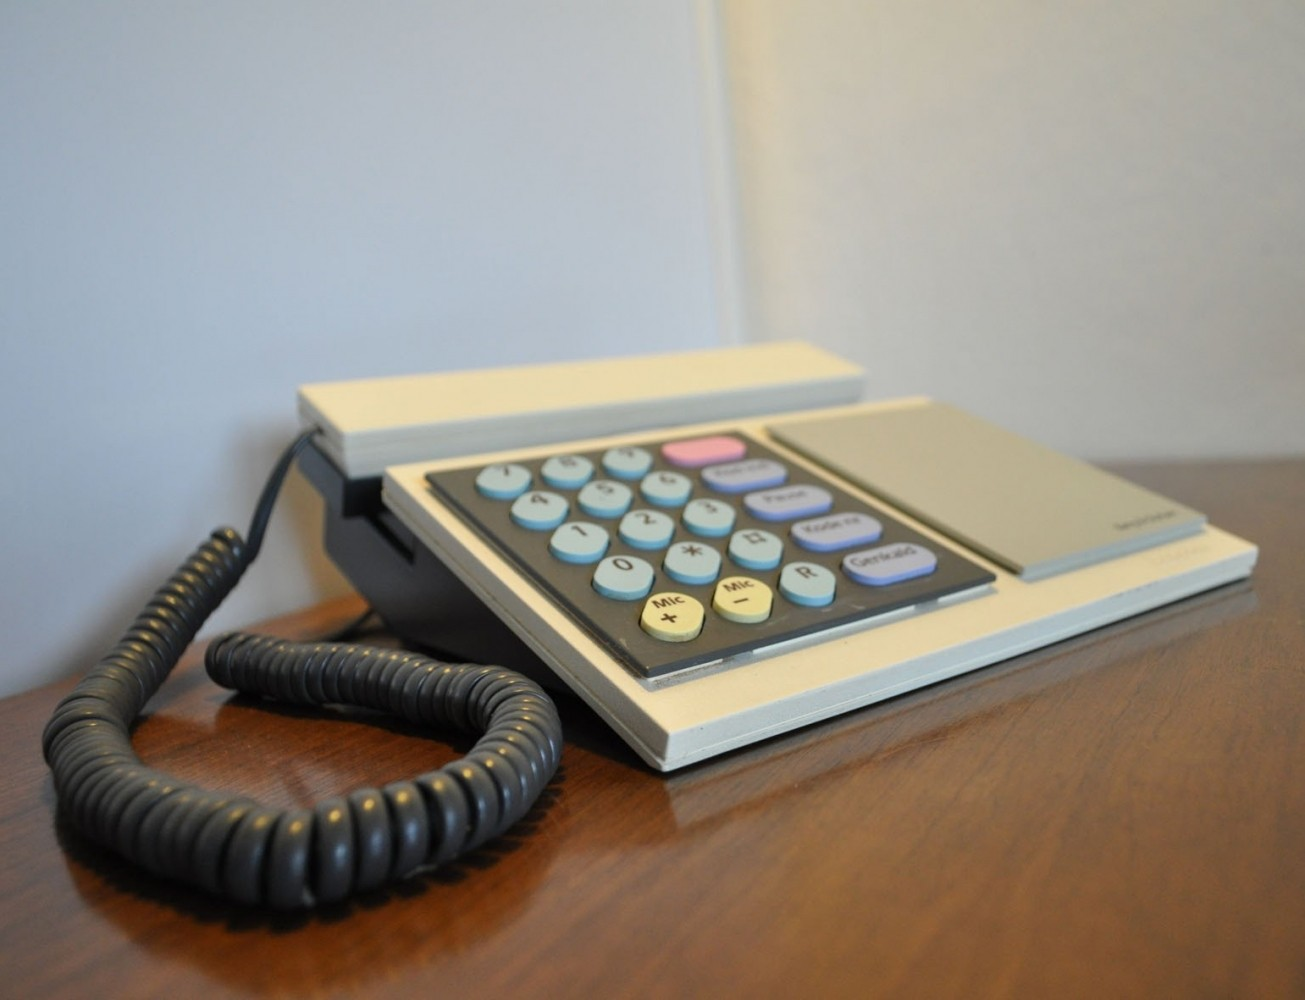 bang and olufsen telephone. model 1000 telephone by bang \u0026 olufsen, 1980s and olufsen